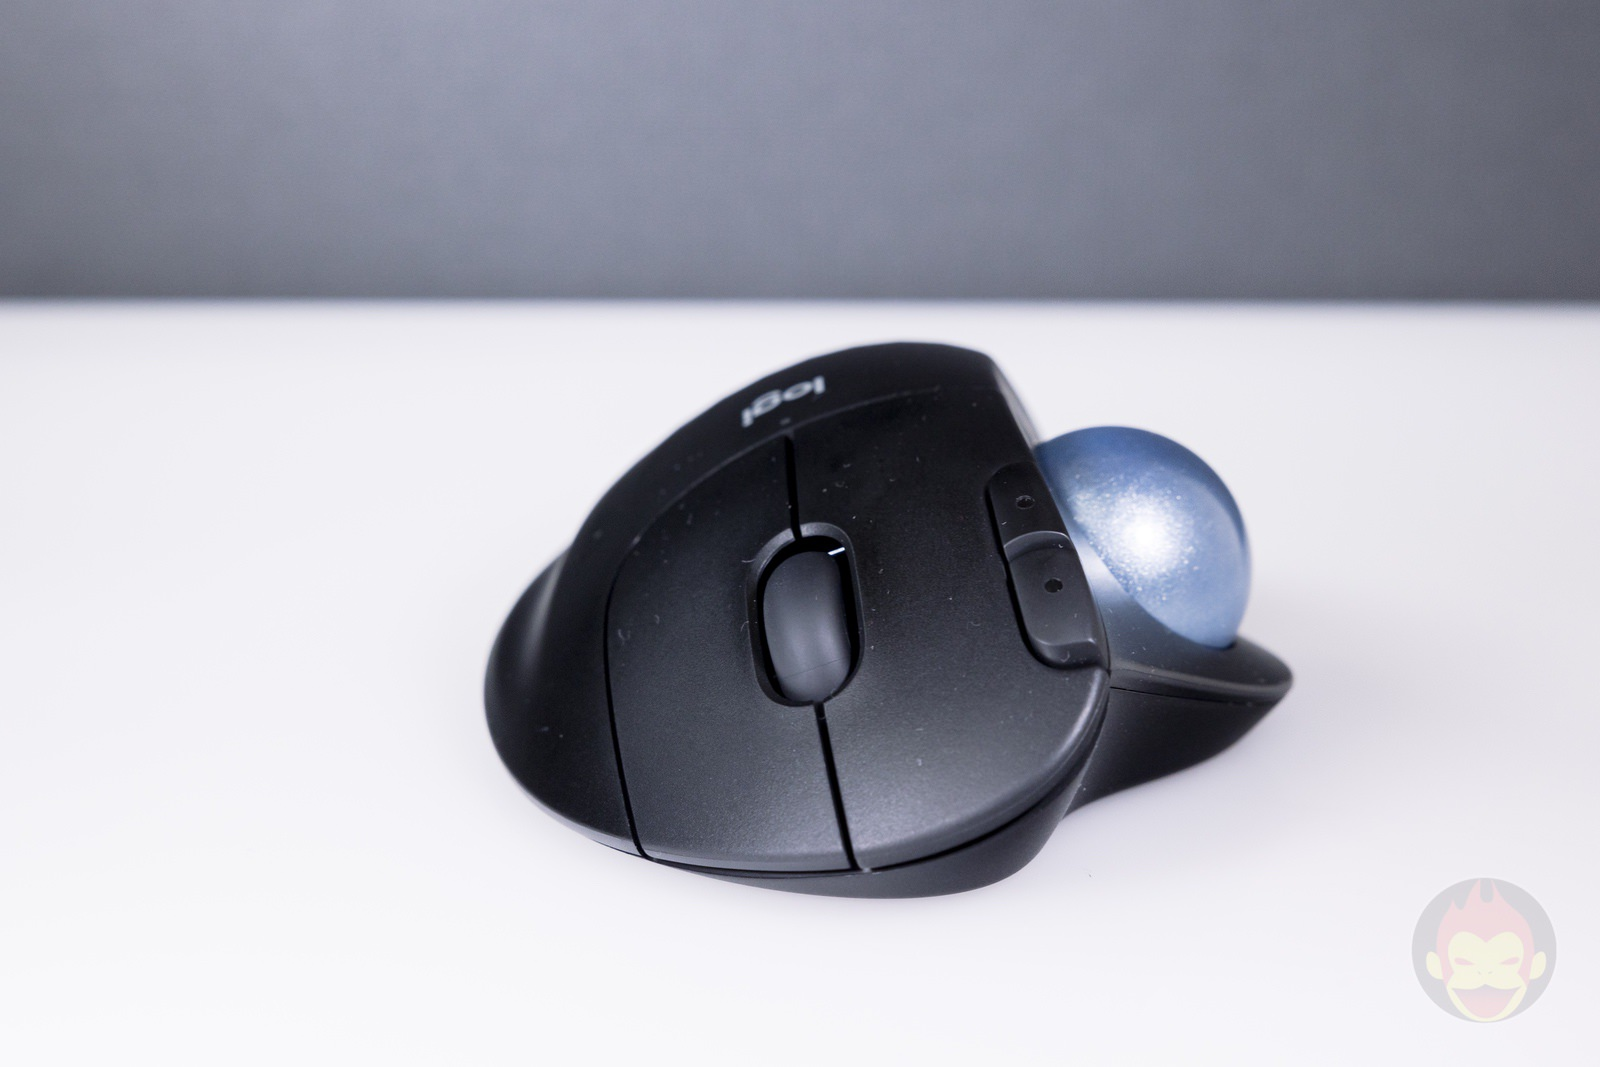 Logicool-ERGO-M575S-Trackball-Hands-on-14.jpg